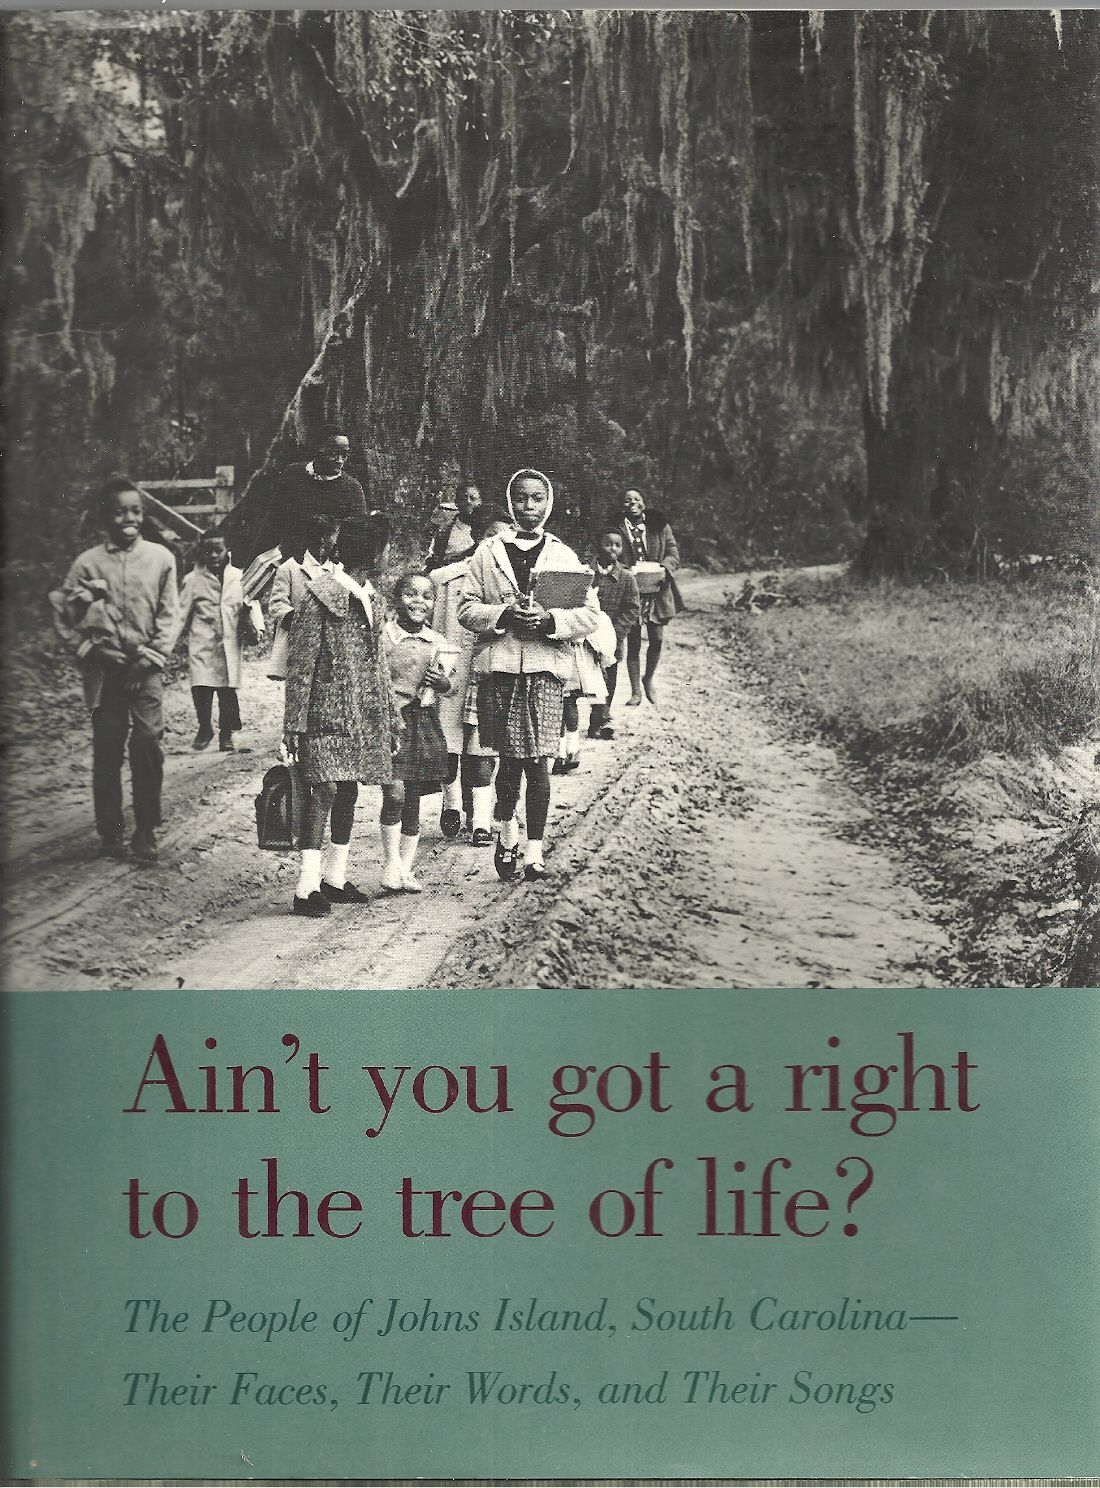 Ain't You Got a Right to the Tree of Life?: The People of Johns Island, South Carolina--Their Faces, Their Words, and Their Songs